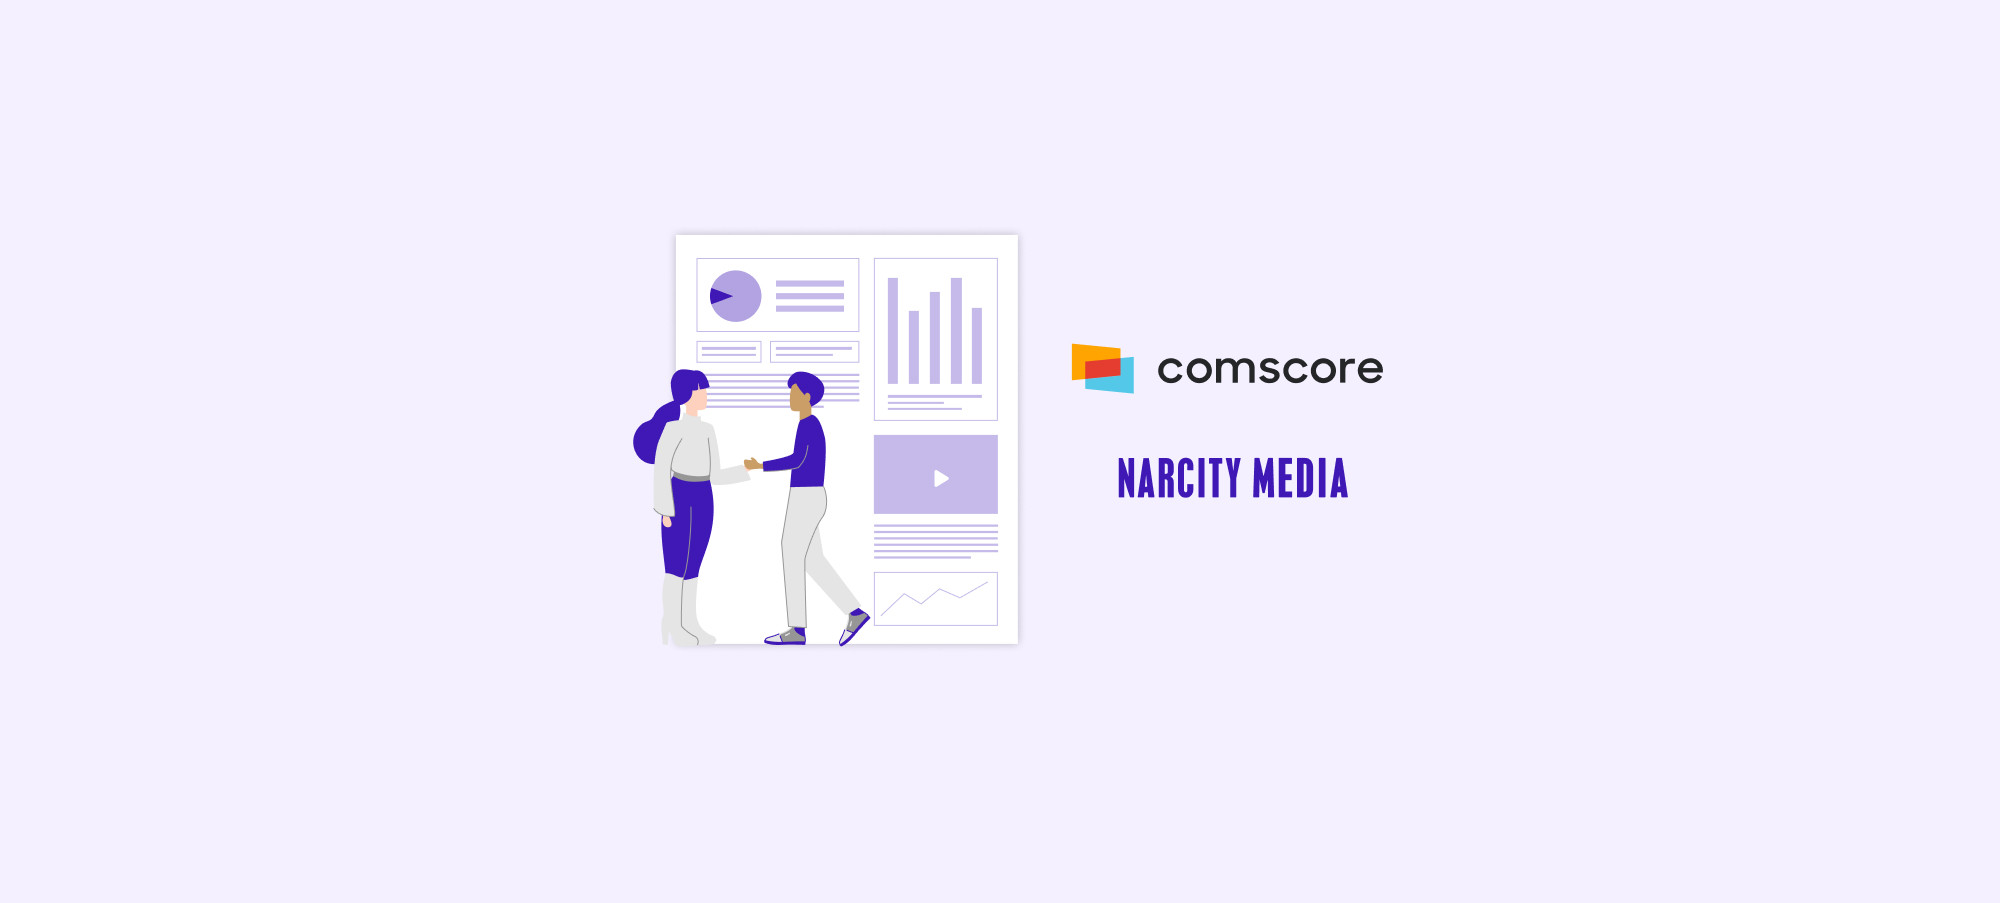 Narcity Media Connects With Comscore For Data Backed Strategy